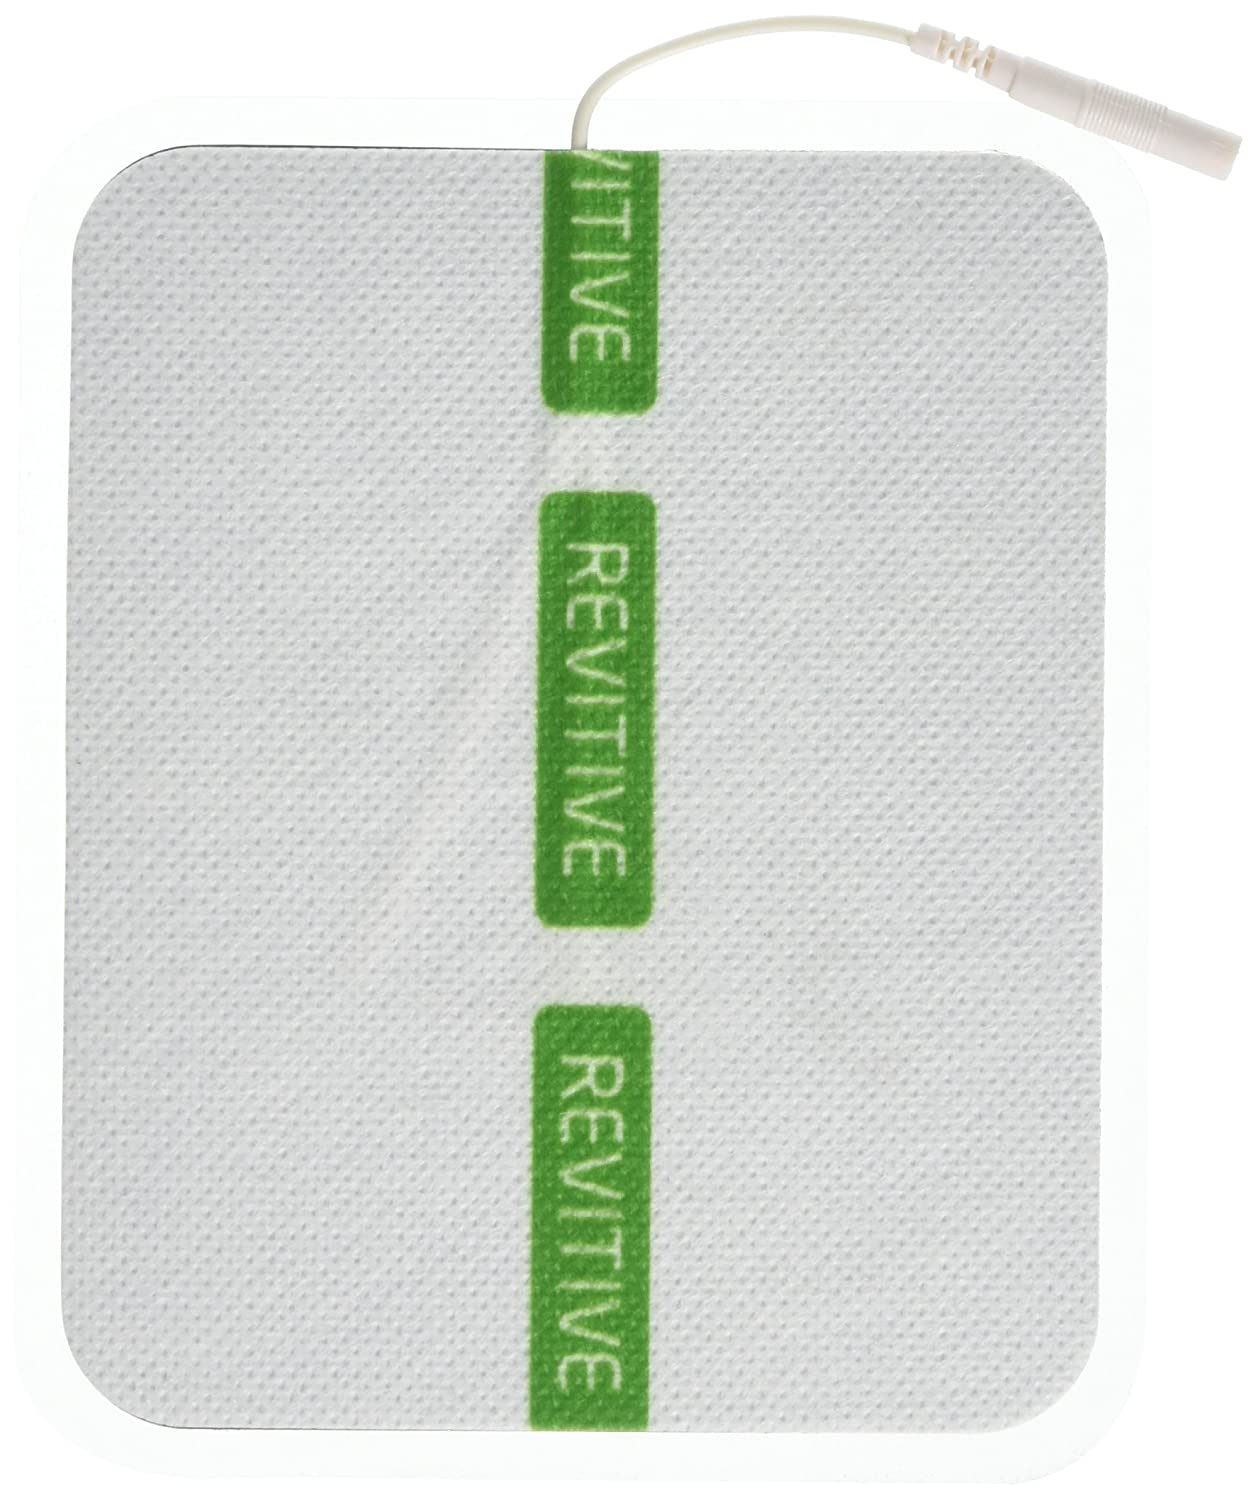 Eligible for VAT relief in the UK Revitive Arthritis Knee Pads